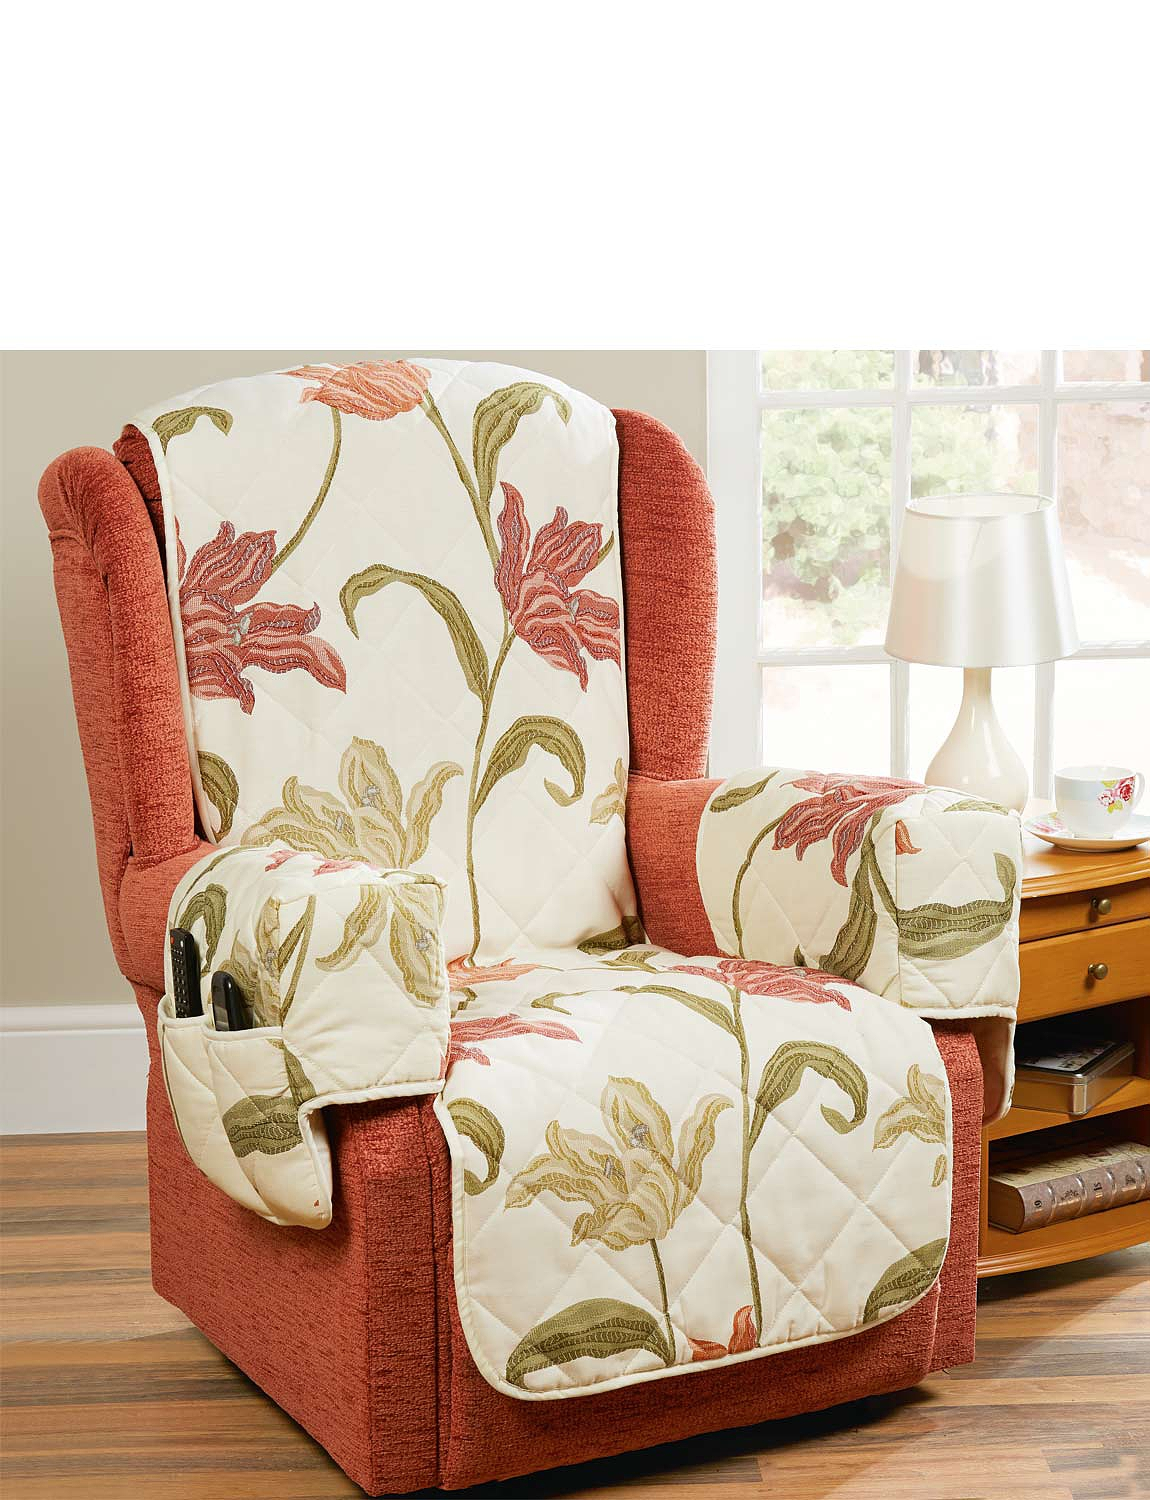 Kinsale quilted furniture protectors chums for Furniture protectors